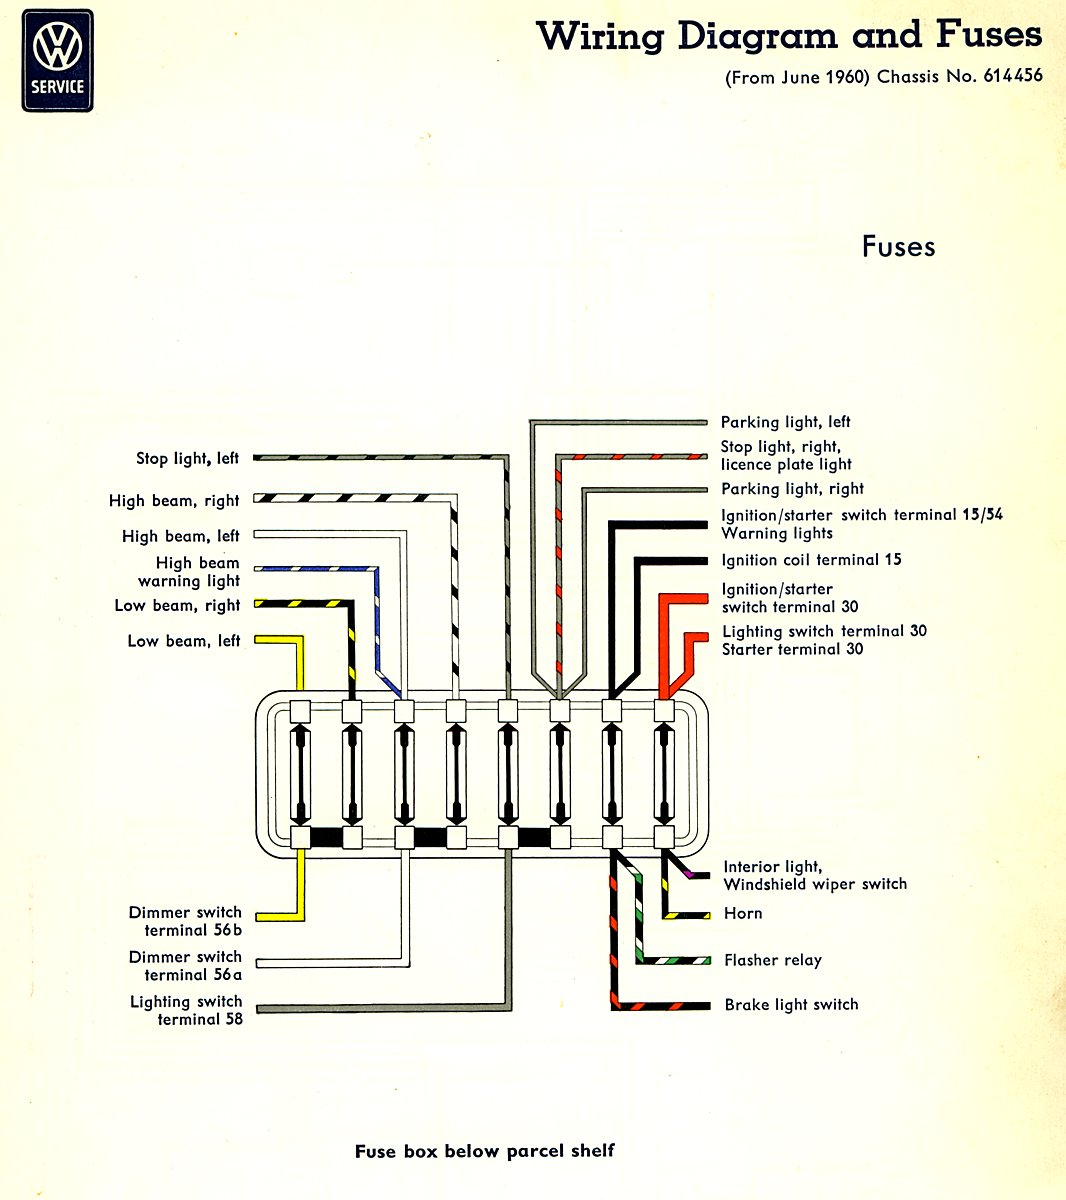 bus_61_fuses thesamba com type 2 wiring diagrams 1970 c10 fuse box diagram at honlapkeszites.co